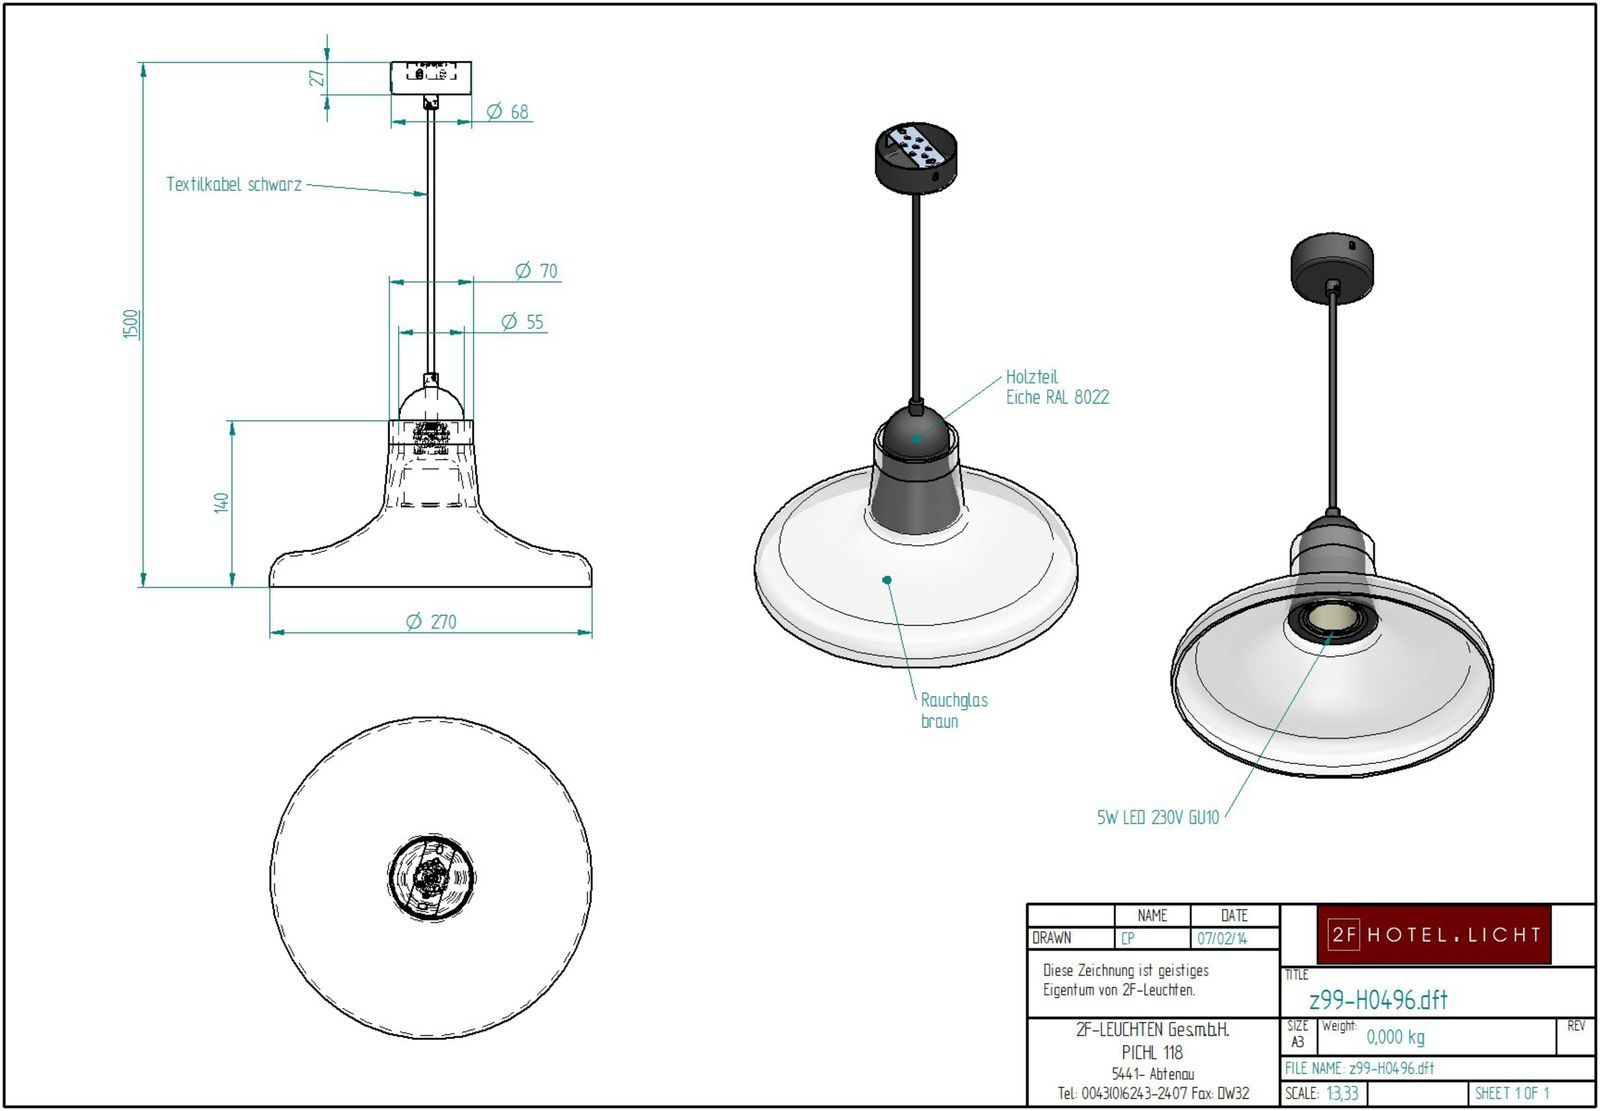 Pendant Lamp, L:Ø270mm, H:1500mm, surface: Metal, SWM black, techn. Data: 1xGU10, 5W LED 230V, cable colour: black